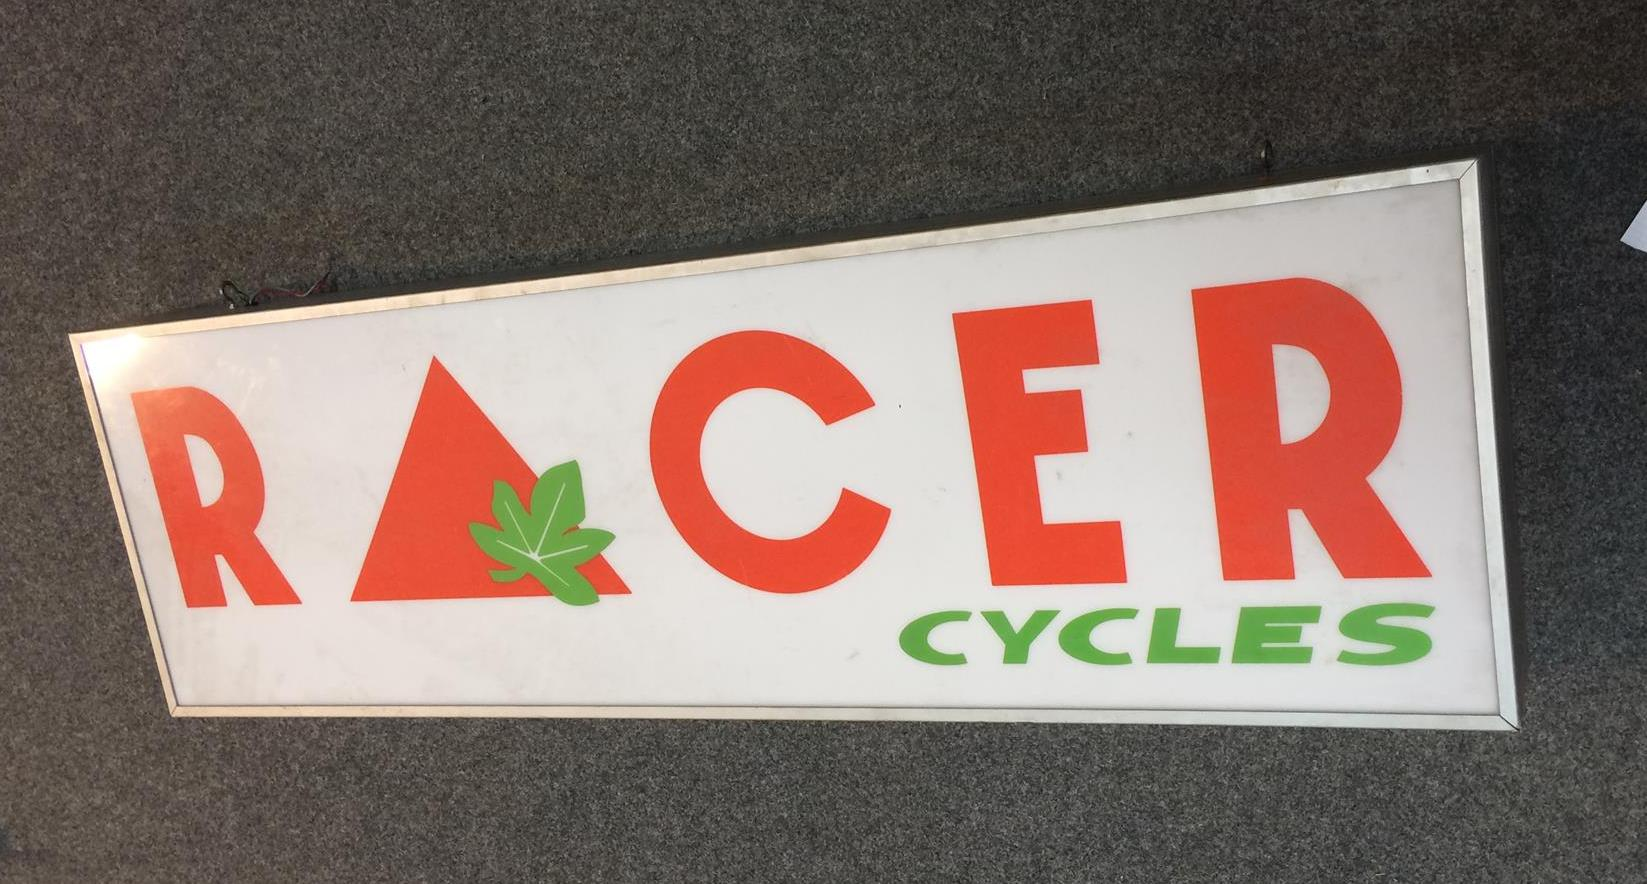 Enseigne publicitaire lumineuse Racer cycles